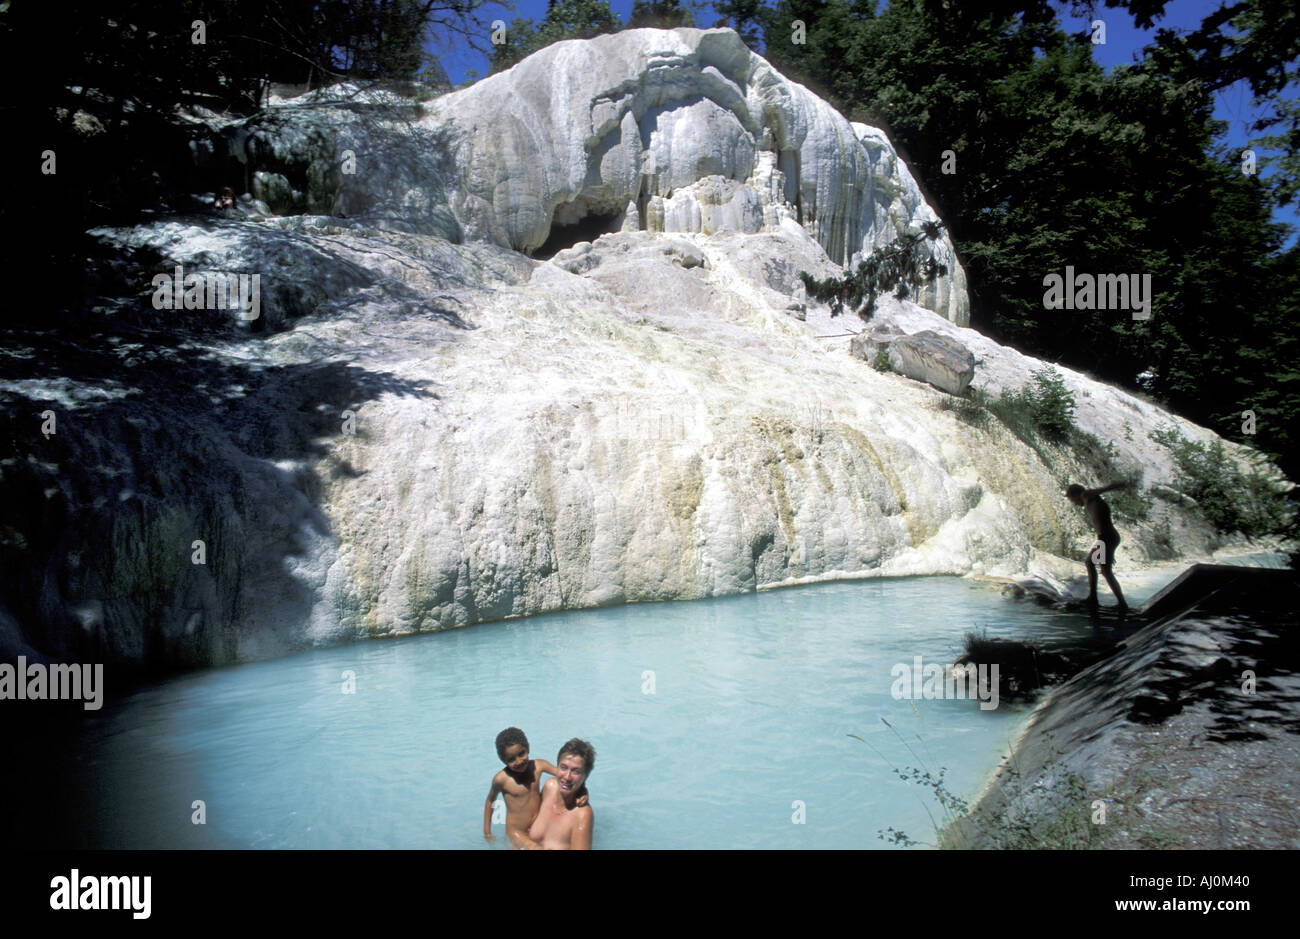 Bathers at thermal waters Fosso Bianco Bagni San Filippo Tuscany Stock Photo, Royalty Free Image ...